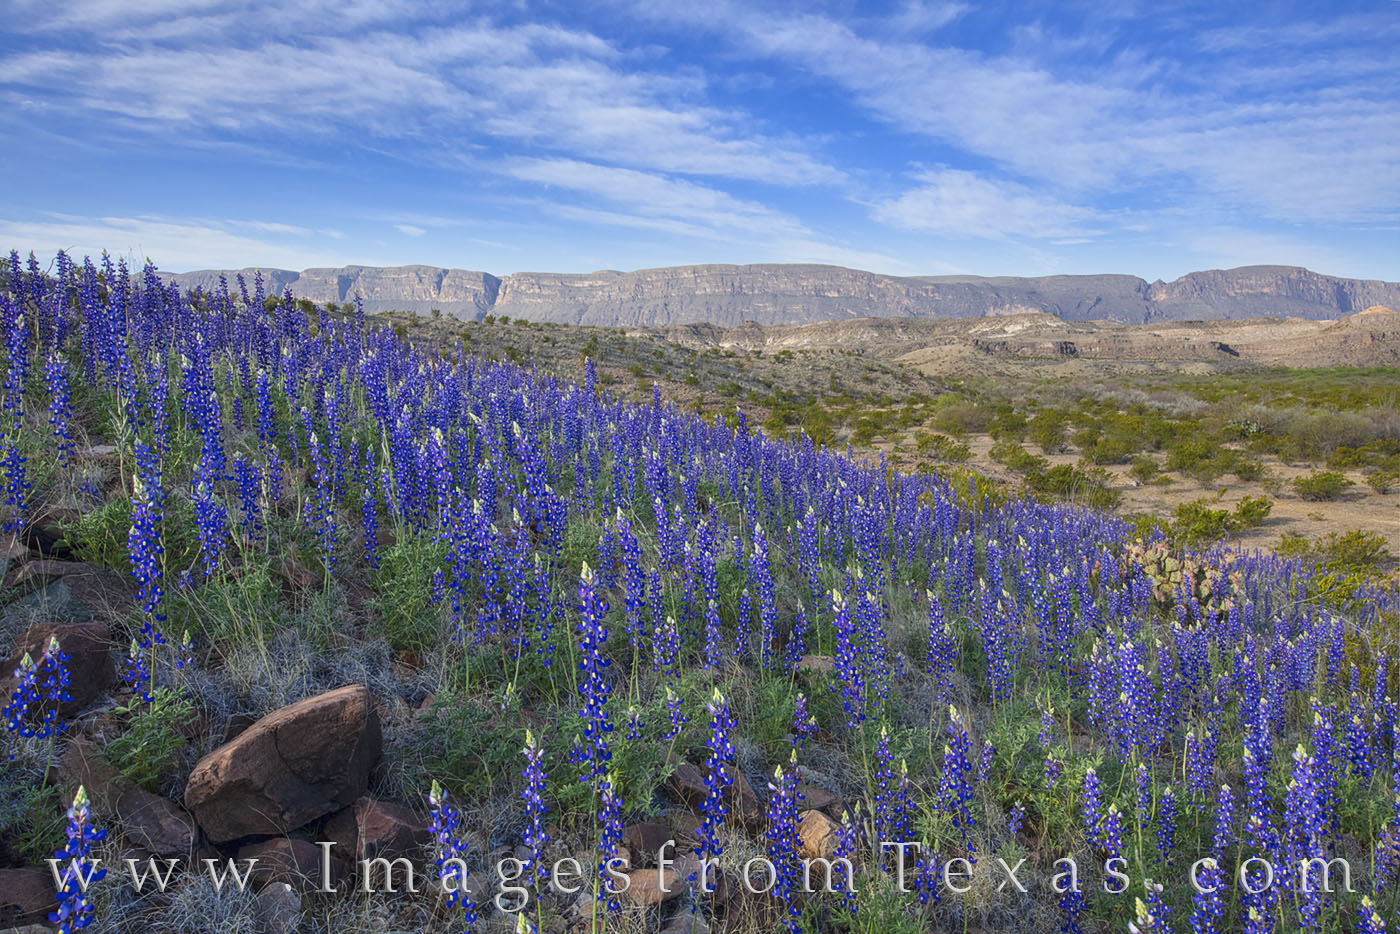 bluebonnets, big bend national park, chisos mountains, river road west, wildflowers, blue, big bend, desert bloom, photo